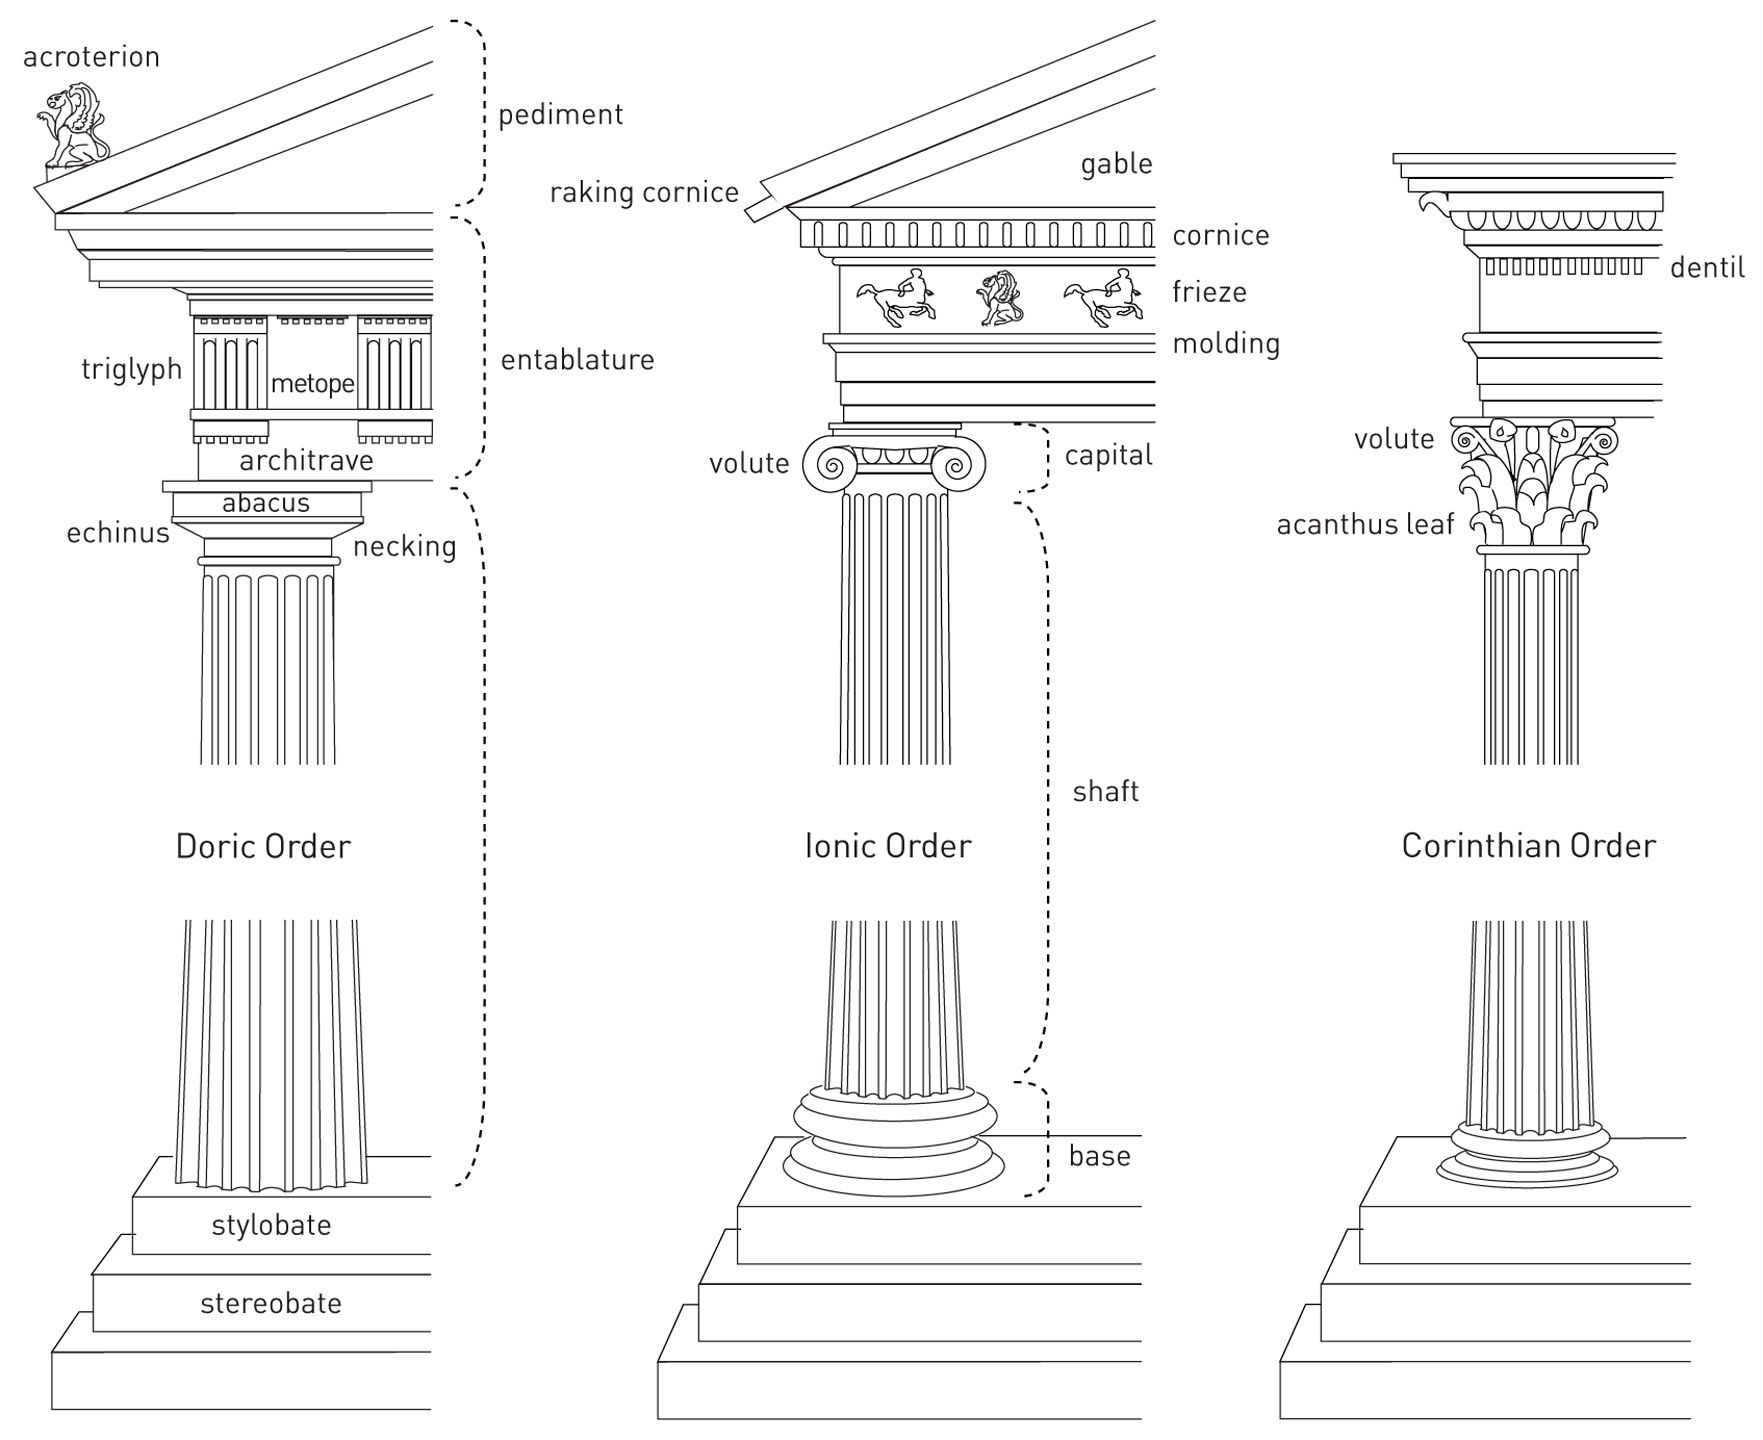 3 18 Diagram Of The Classical Architectural Orders